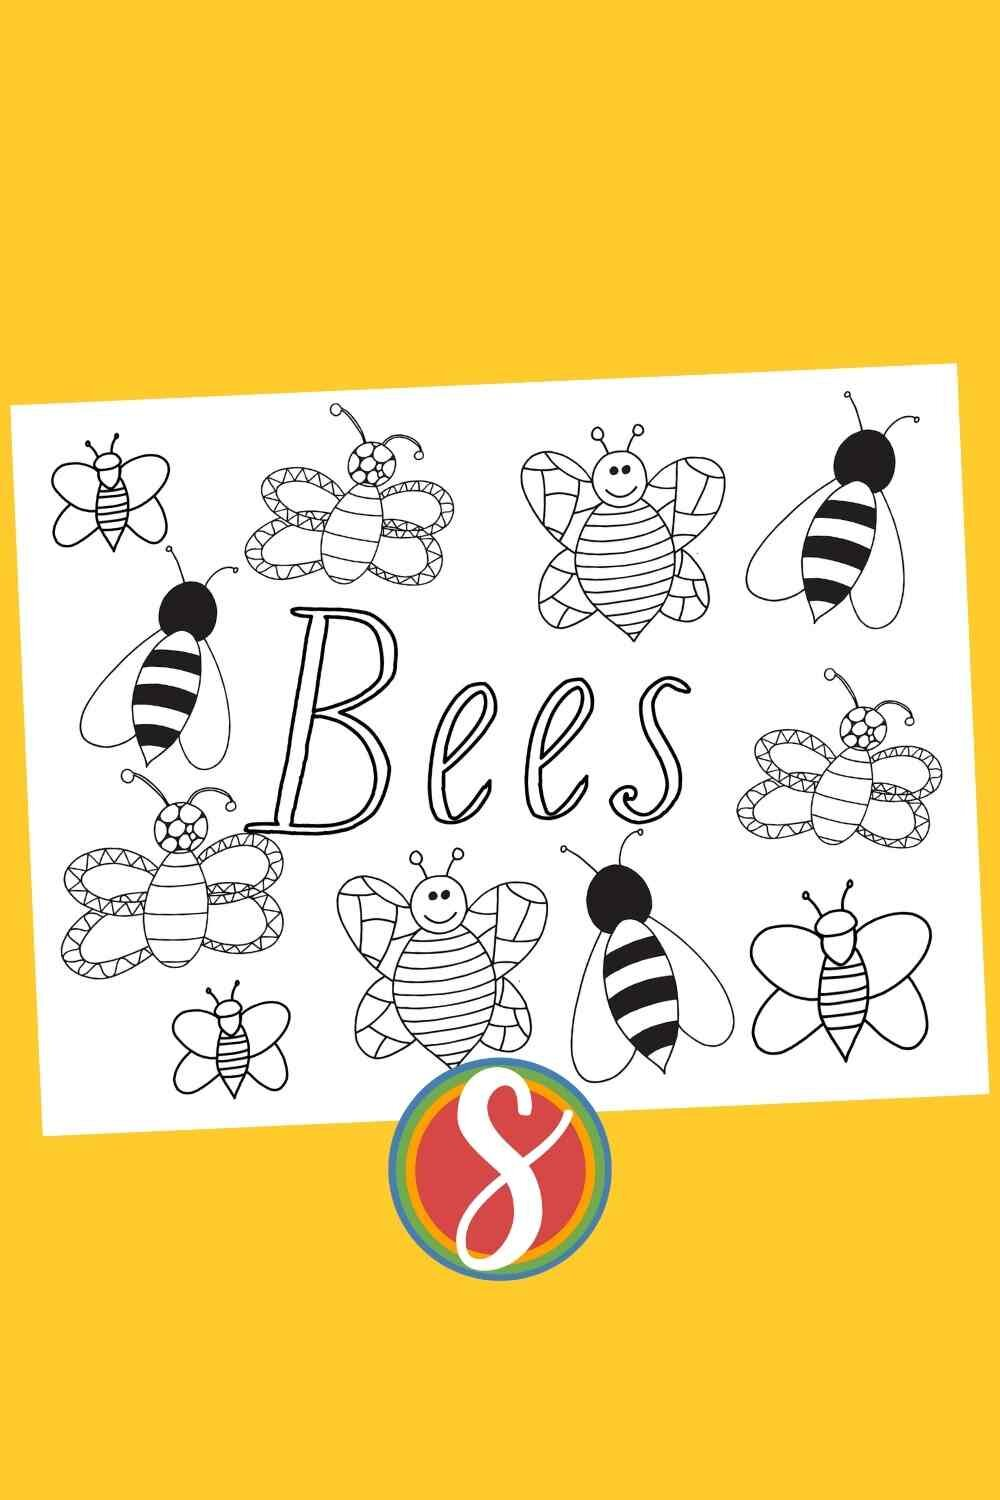 """BEES! Free bees coloring page from Stevie Doodles - """"Bees"""" the word surrounded by a bunch of cute bees to color - print and color free today"""